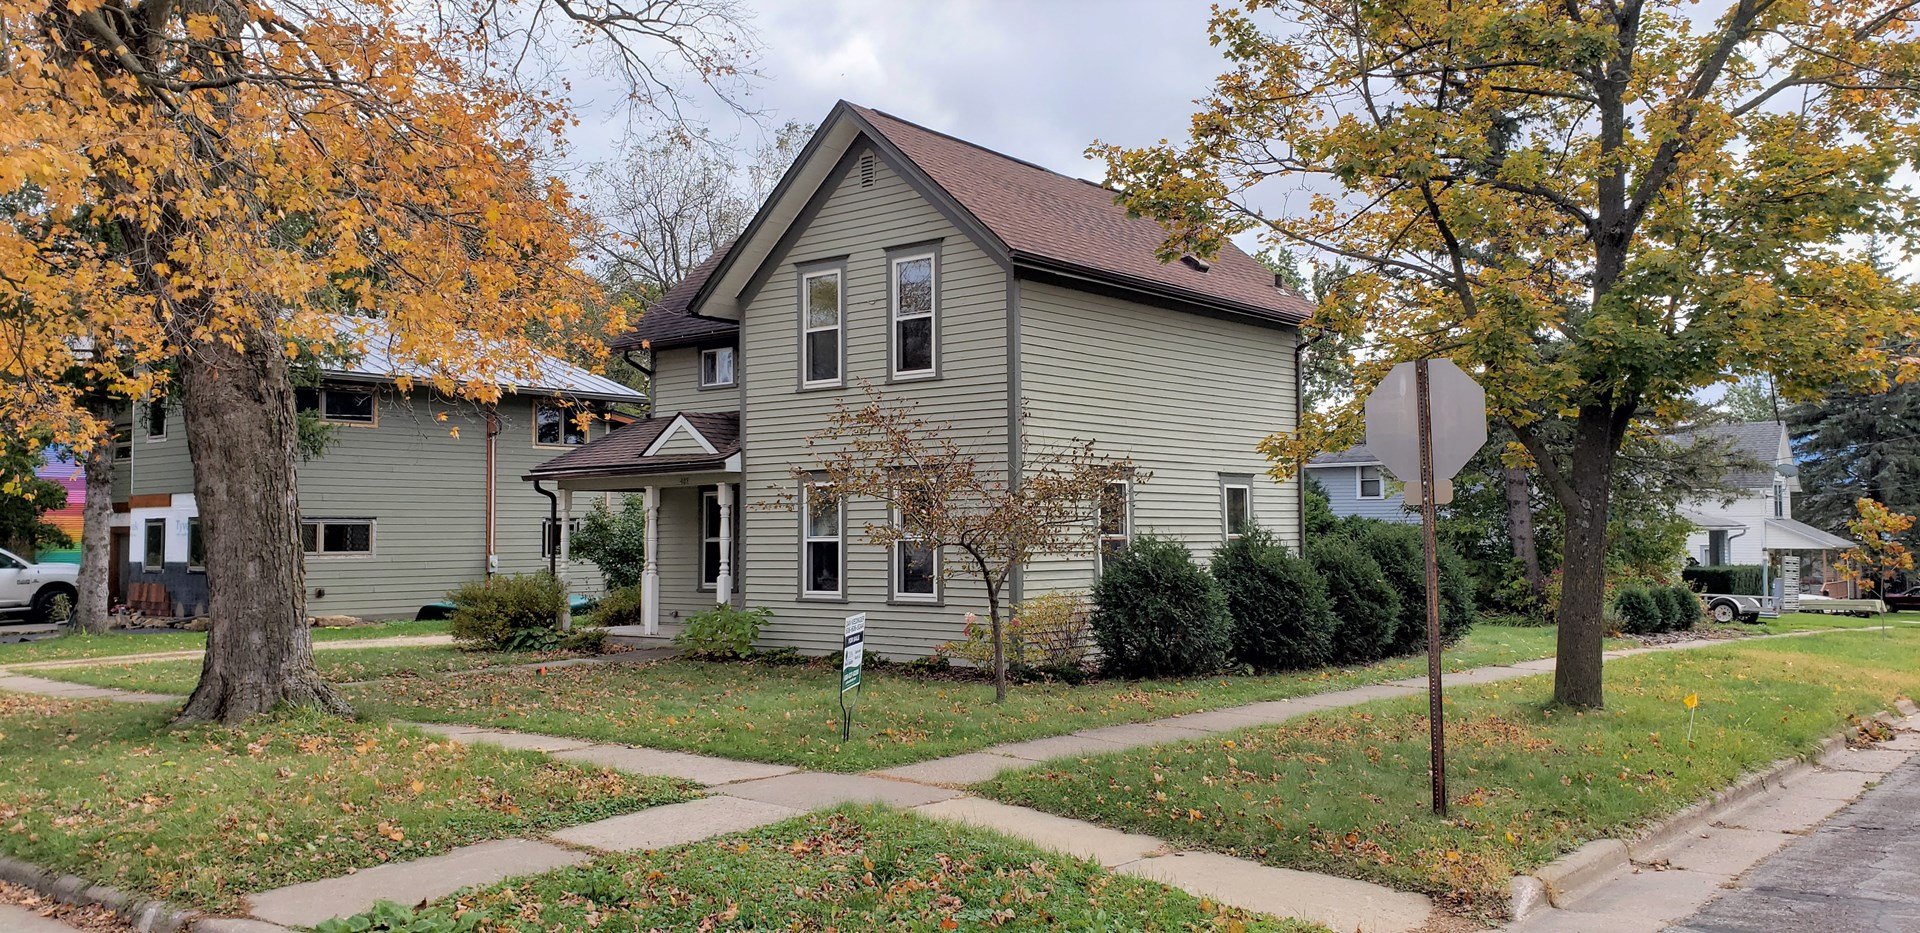 3-Bedroom, 2 Full Bathroom Home For Sale In Viroqua